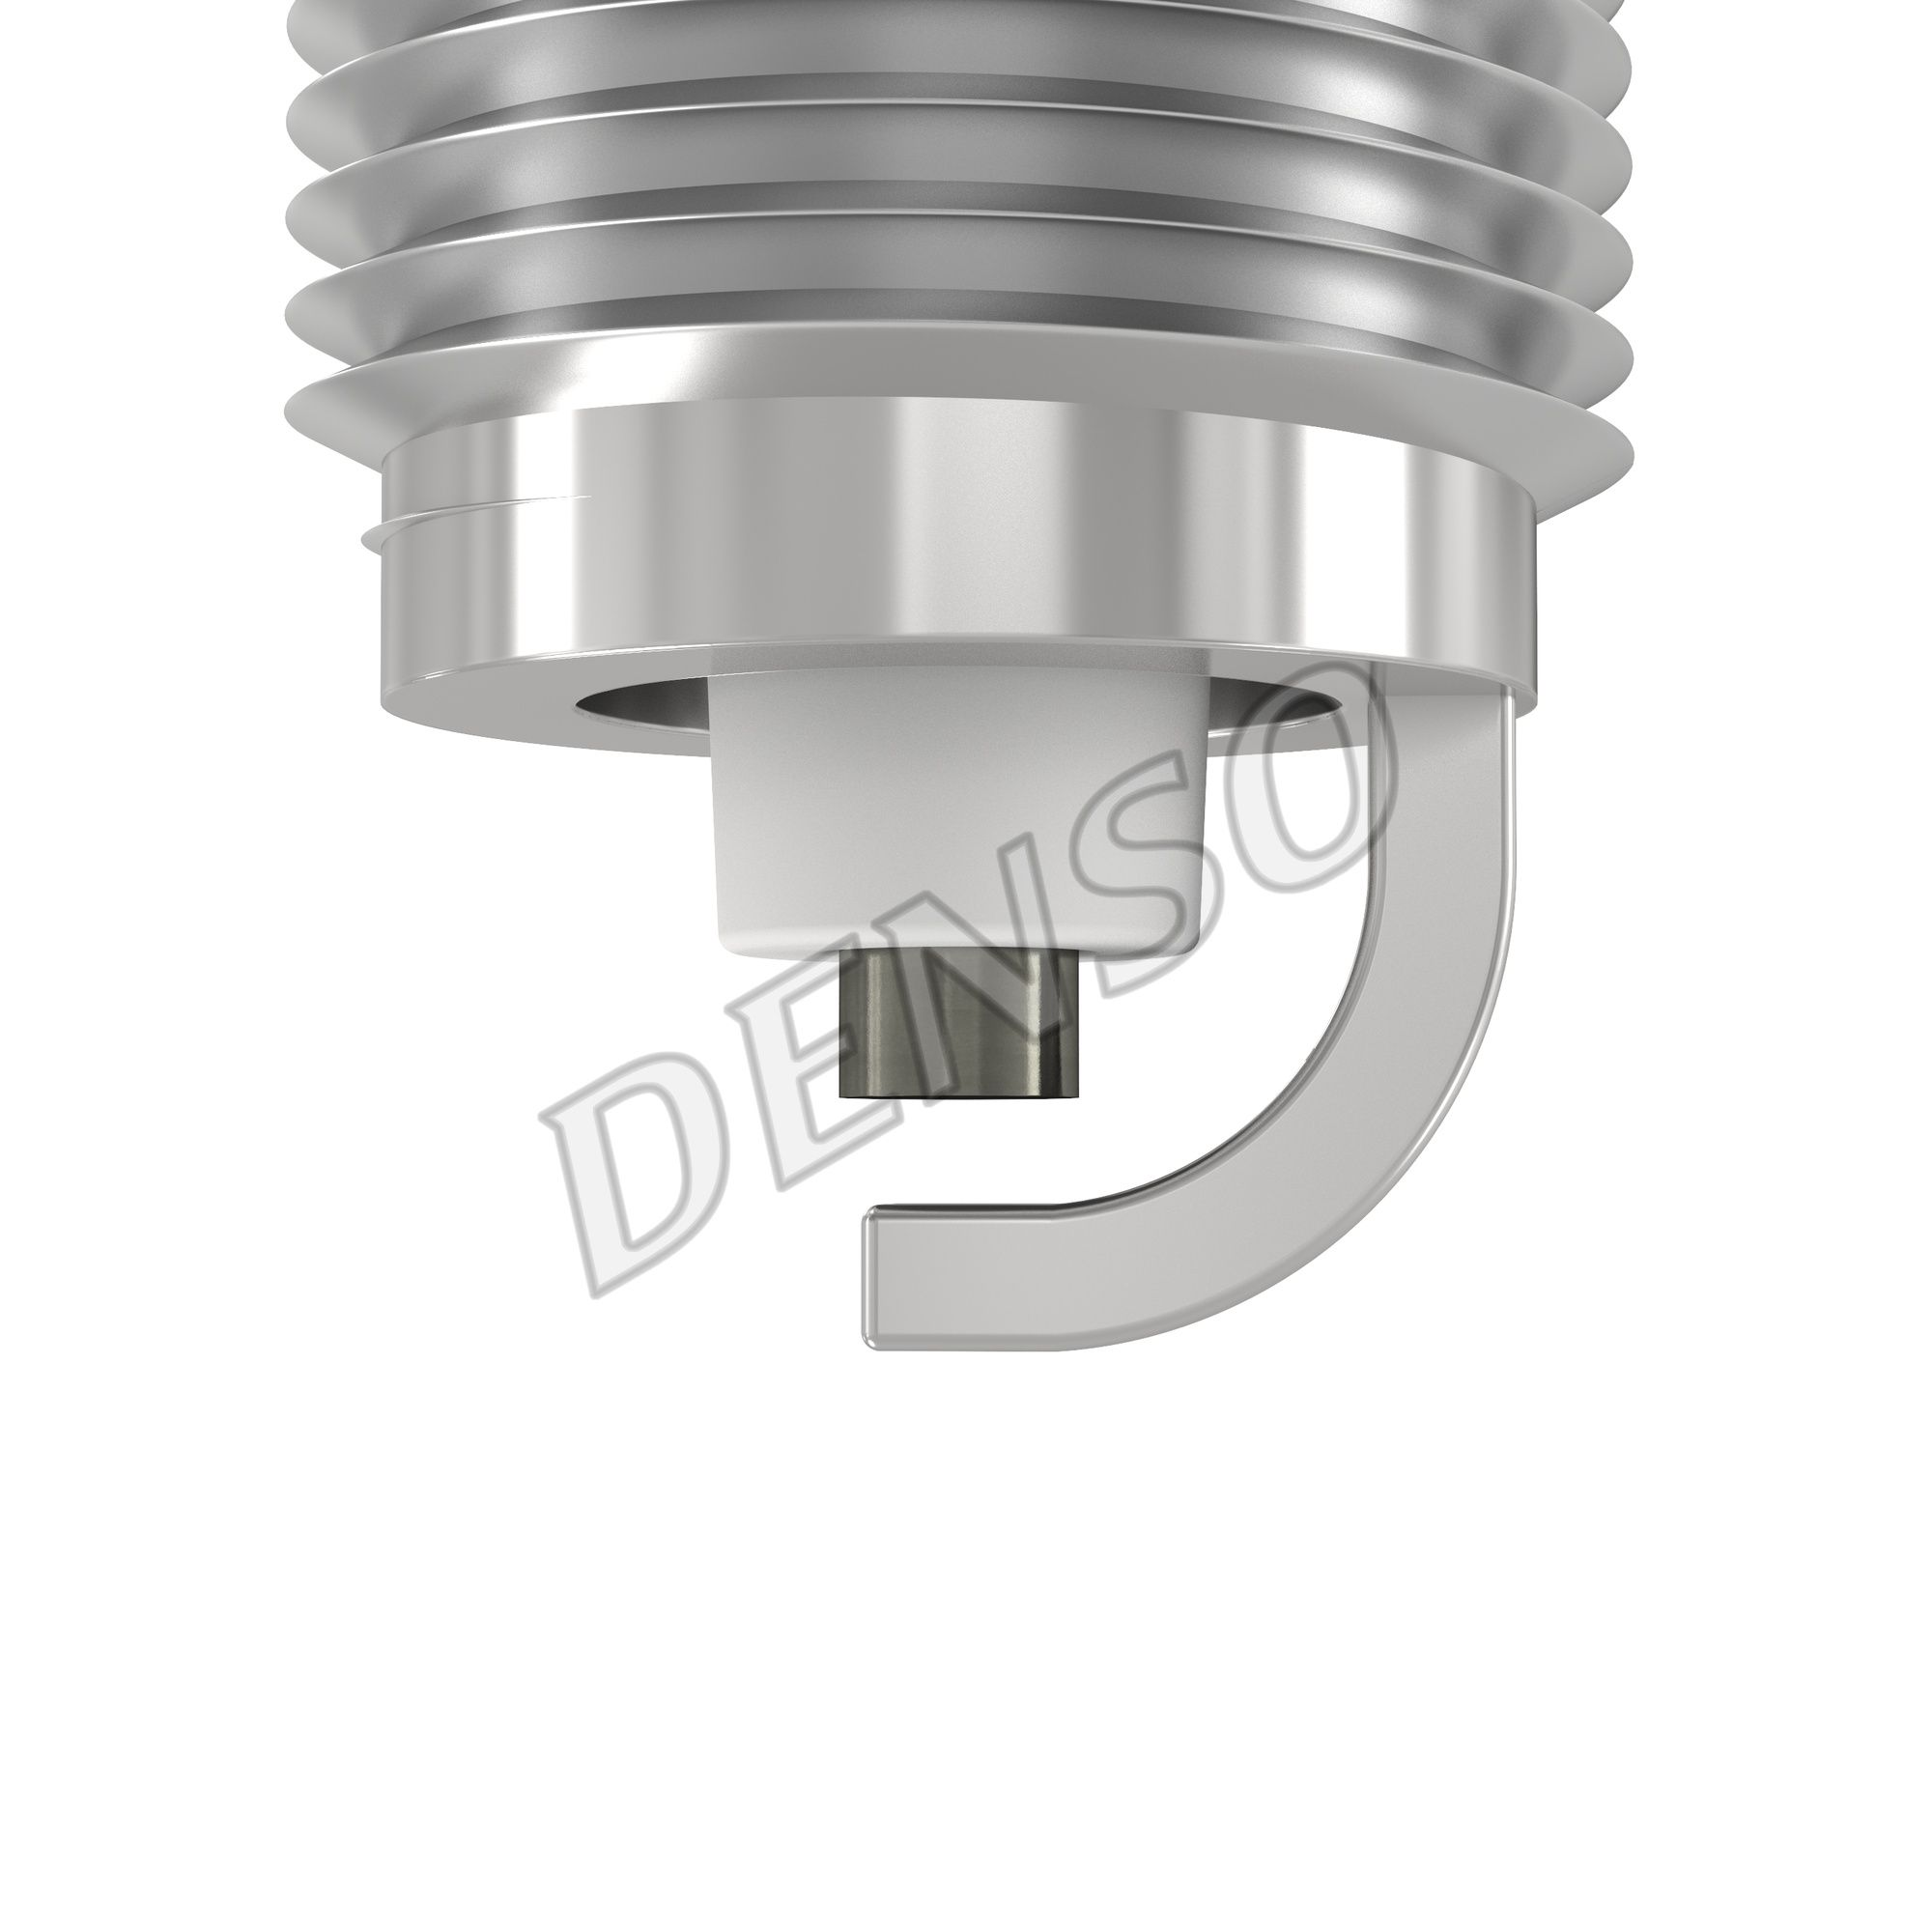 3139 DENSO from manufacturer up to - 26% off!